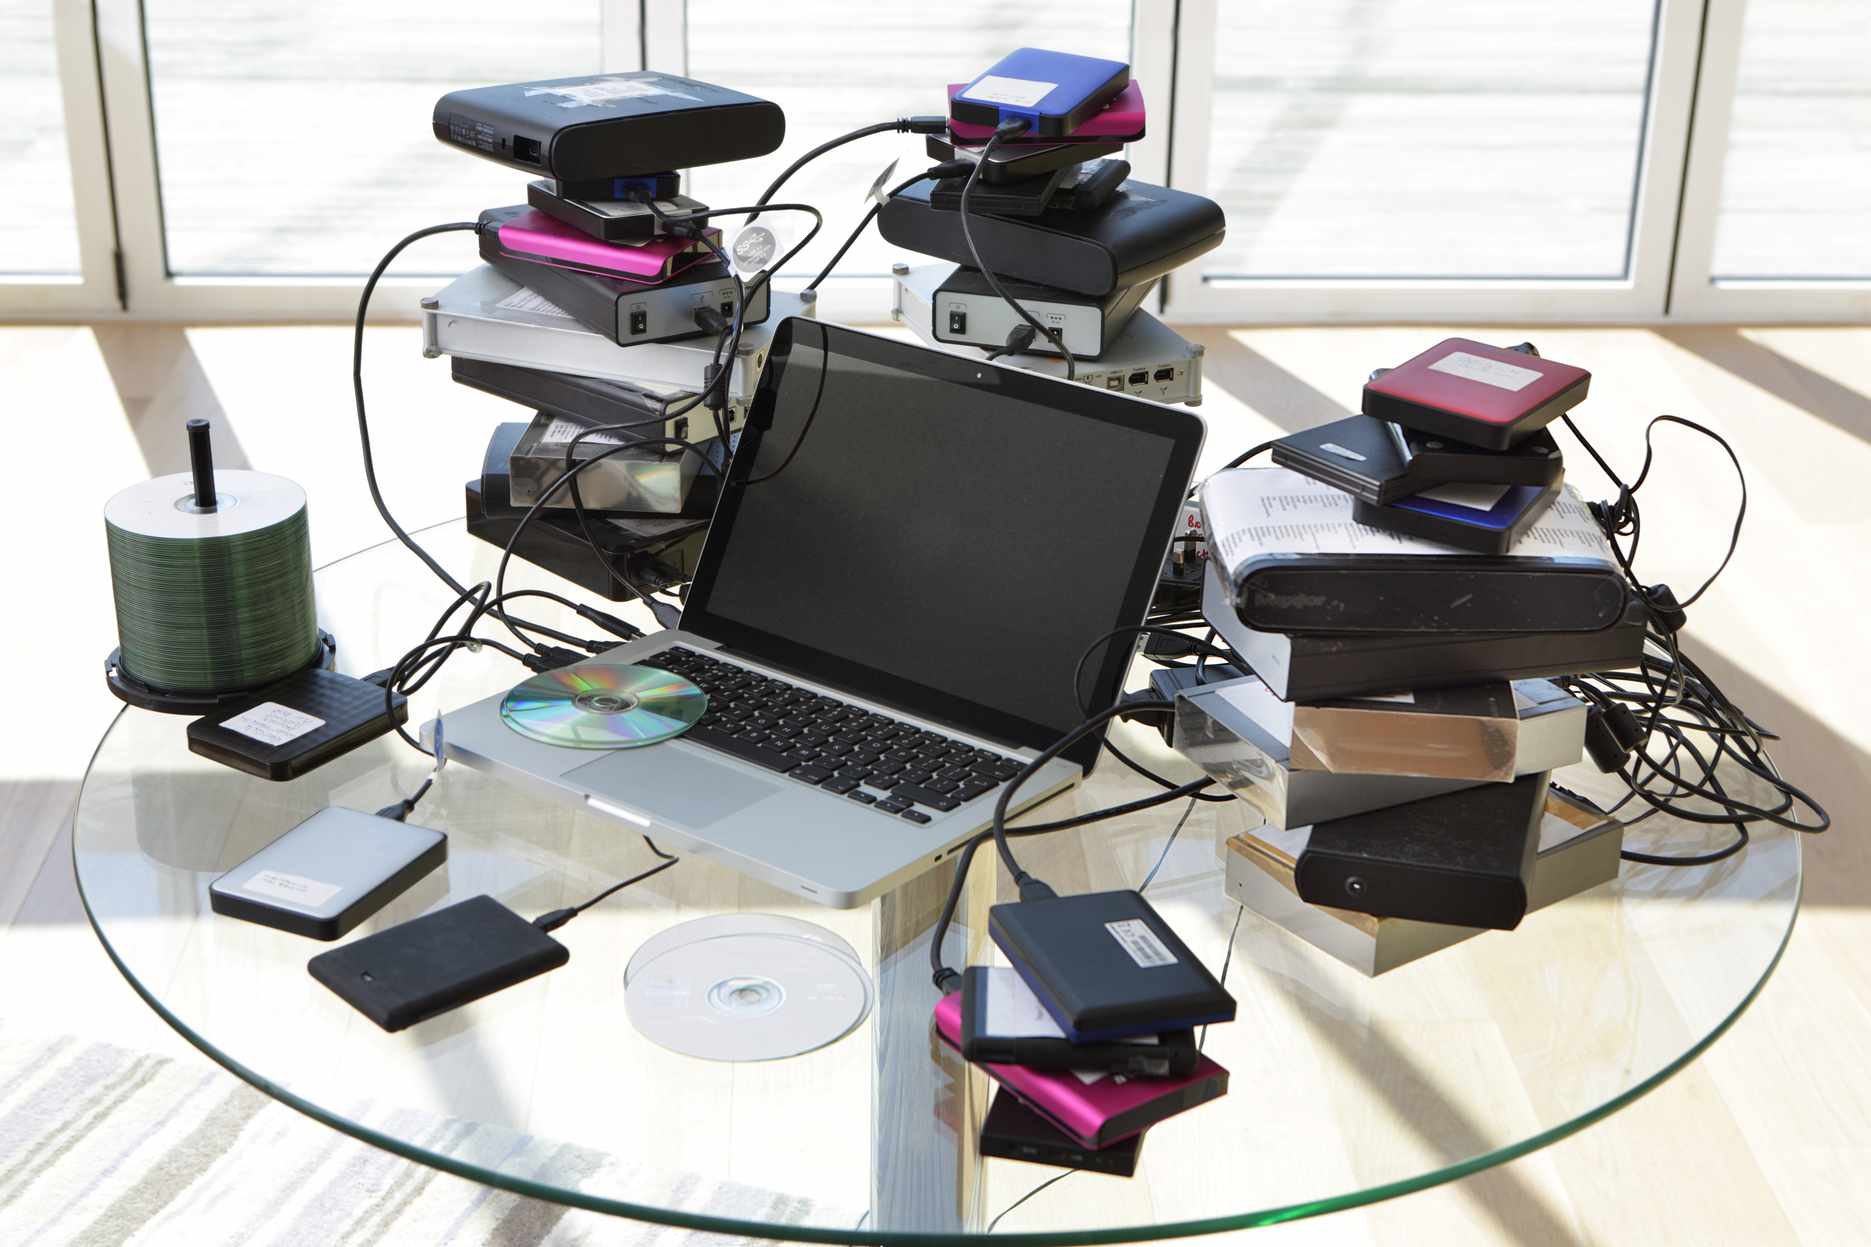 A laptop surrounded by stacks of external hard drives and discs